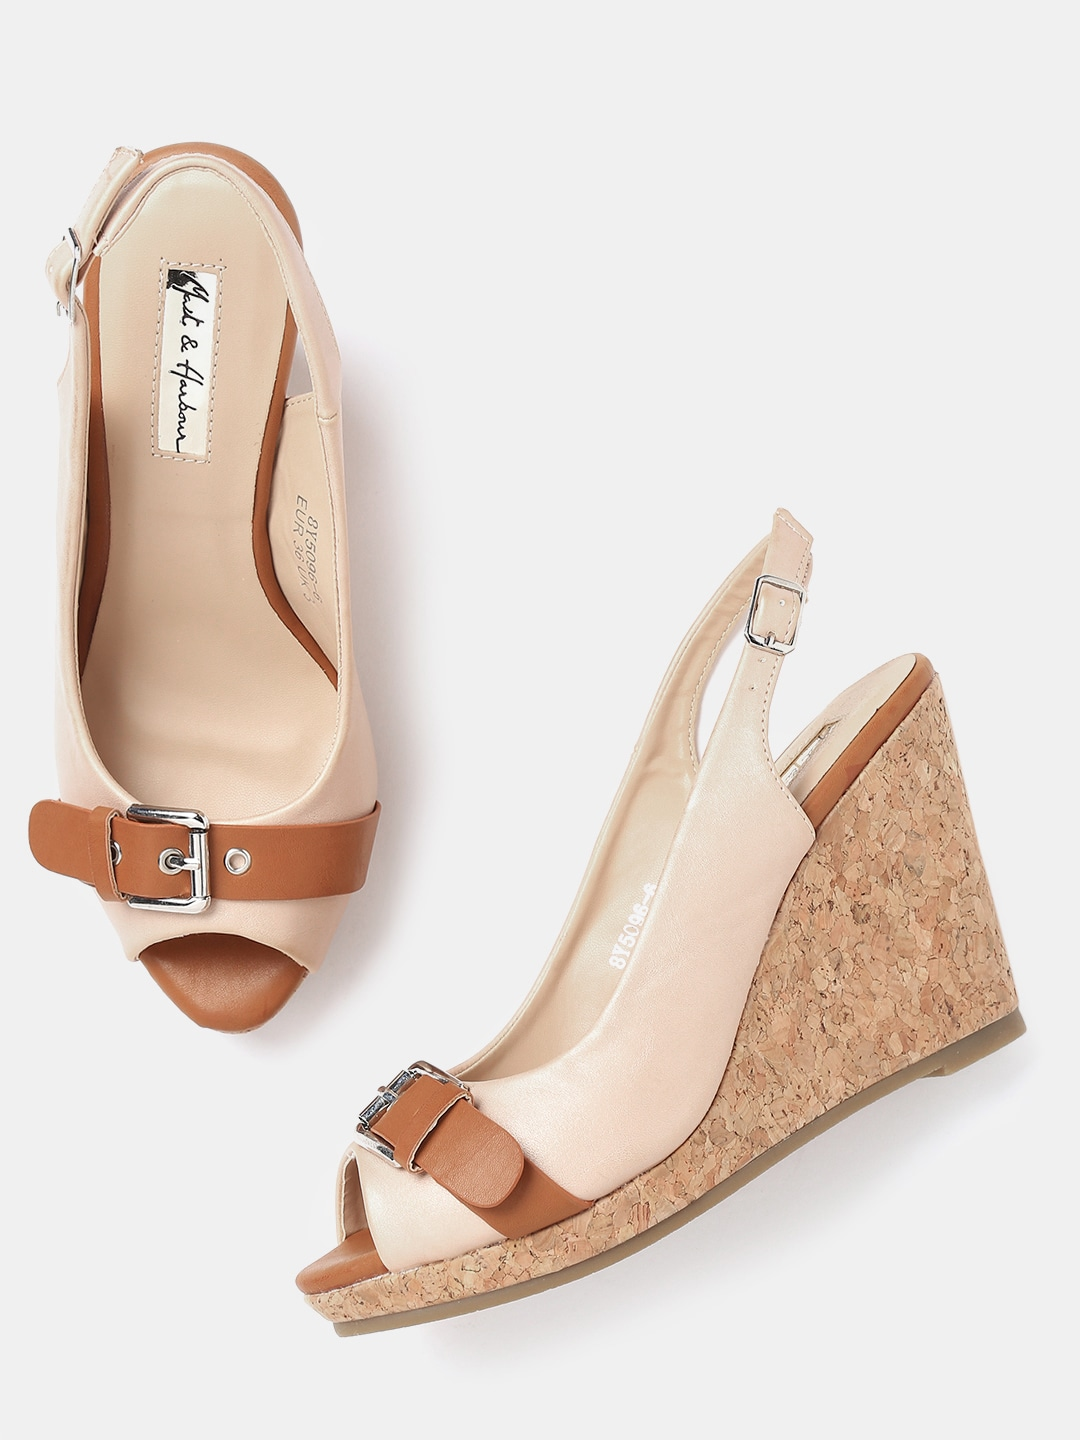 50794a57f90 Womens Wedges - Buy Wedges for Women Online at Best Price